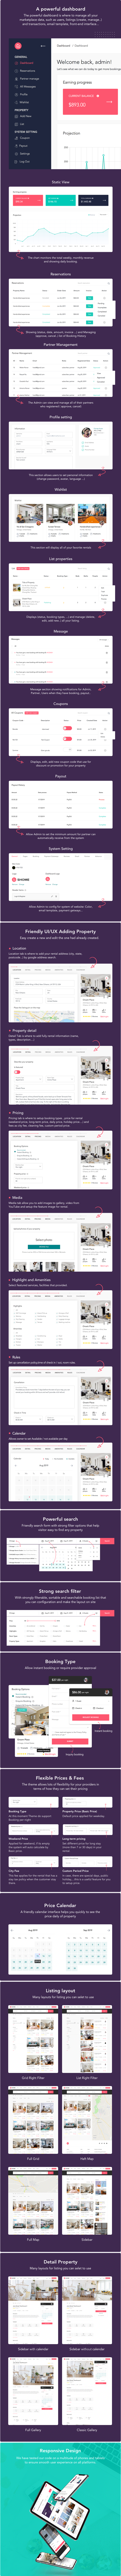 SHome | Marketplace Real Estate WordPress Theme - 7